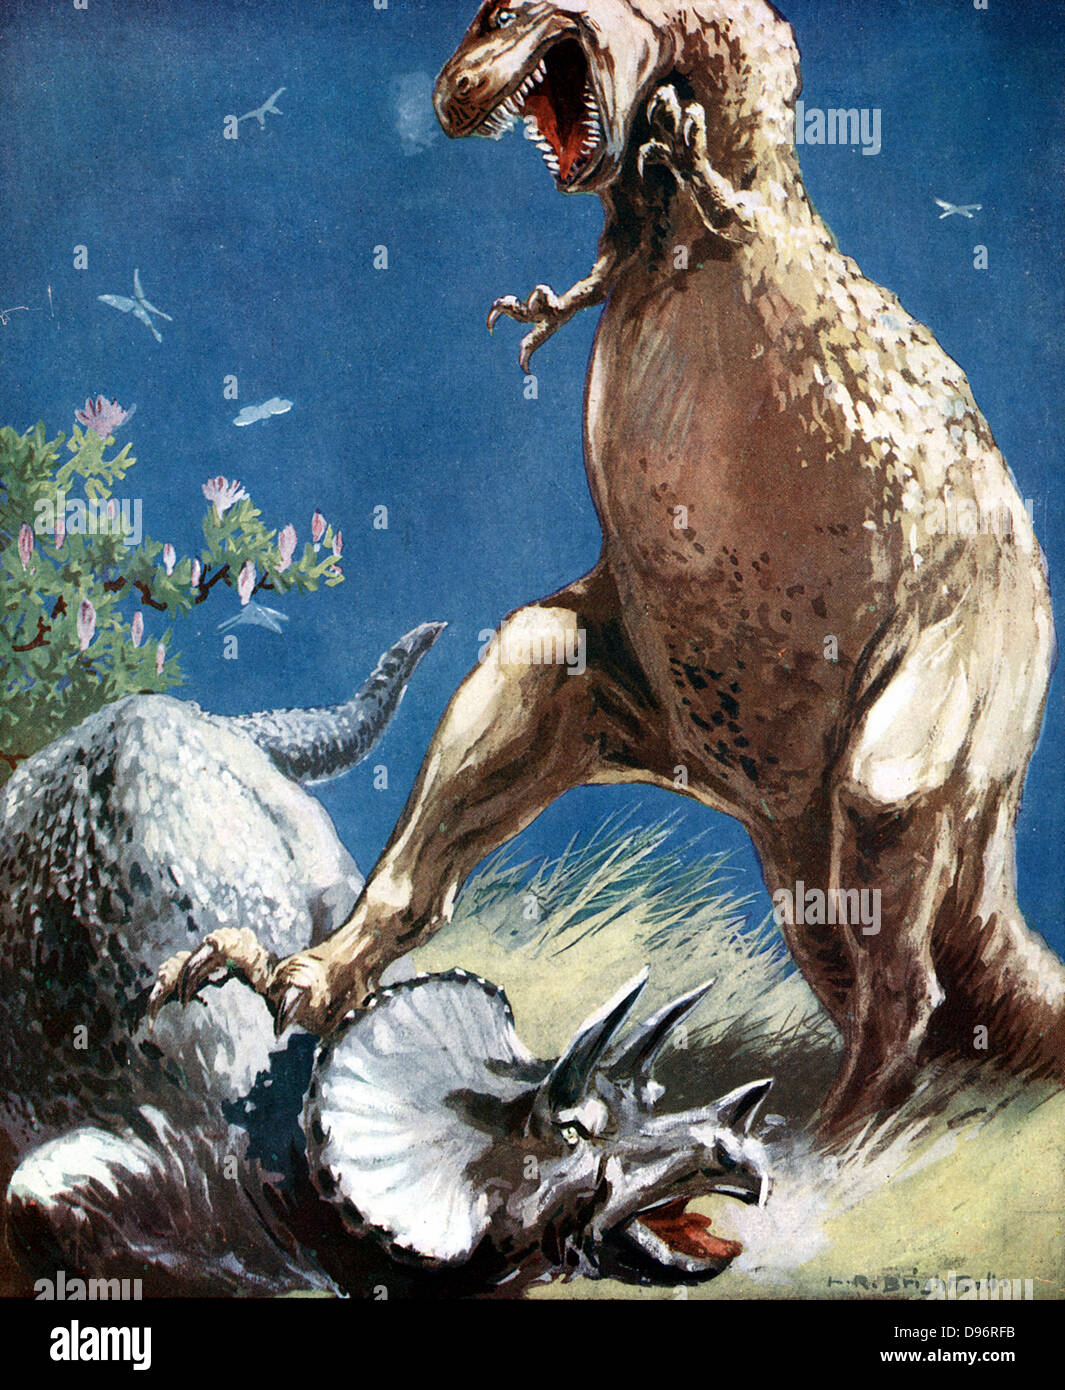 Tricerotops, a horned dinosaur, held down by Tyrannosaur.  Artist's reconstruction of fight between two giant - Stock Image